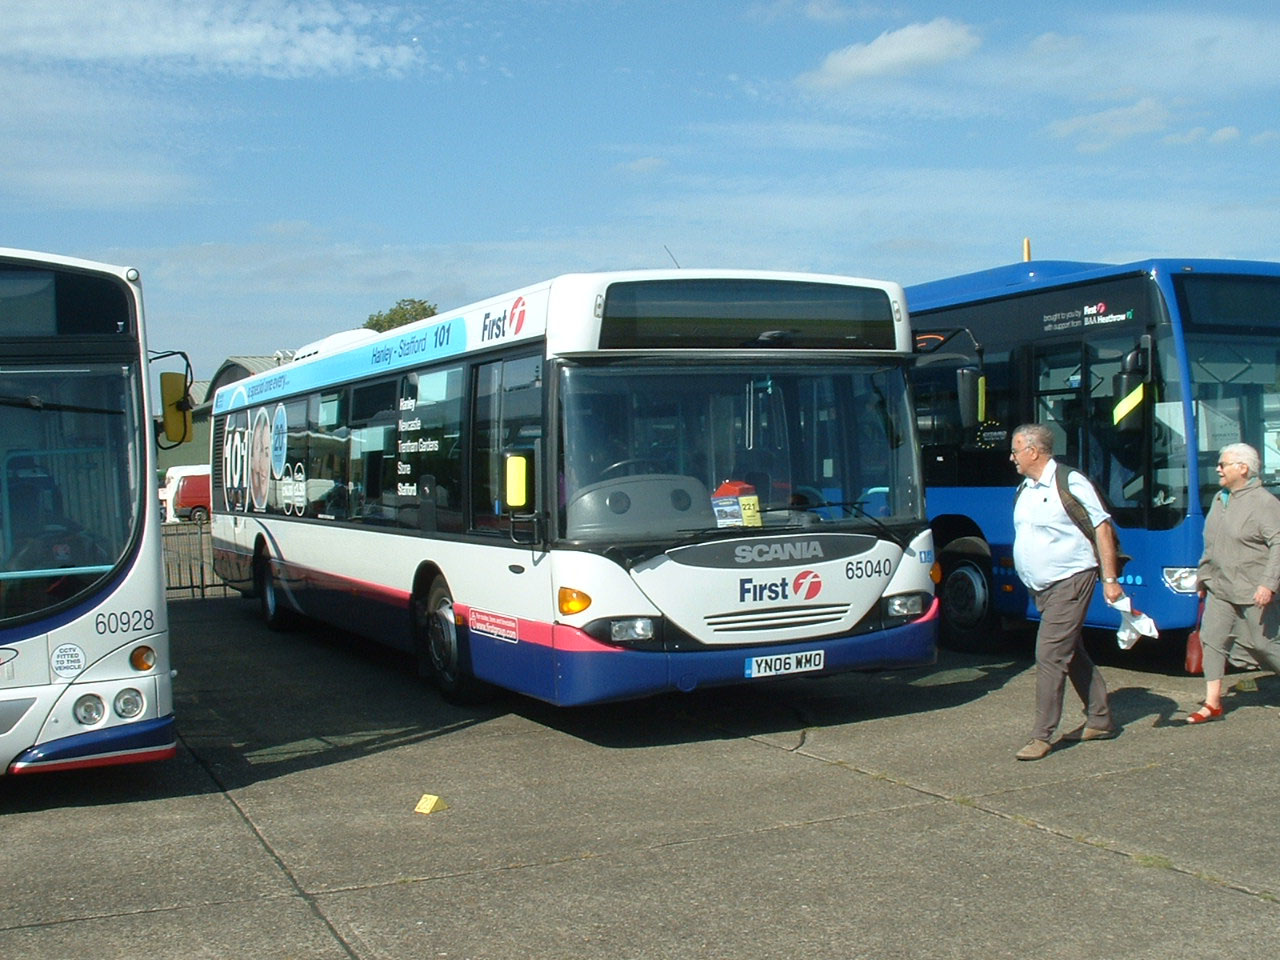 First Potteries Scania Omnicity